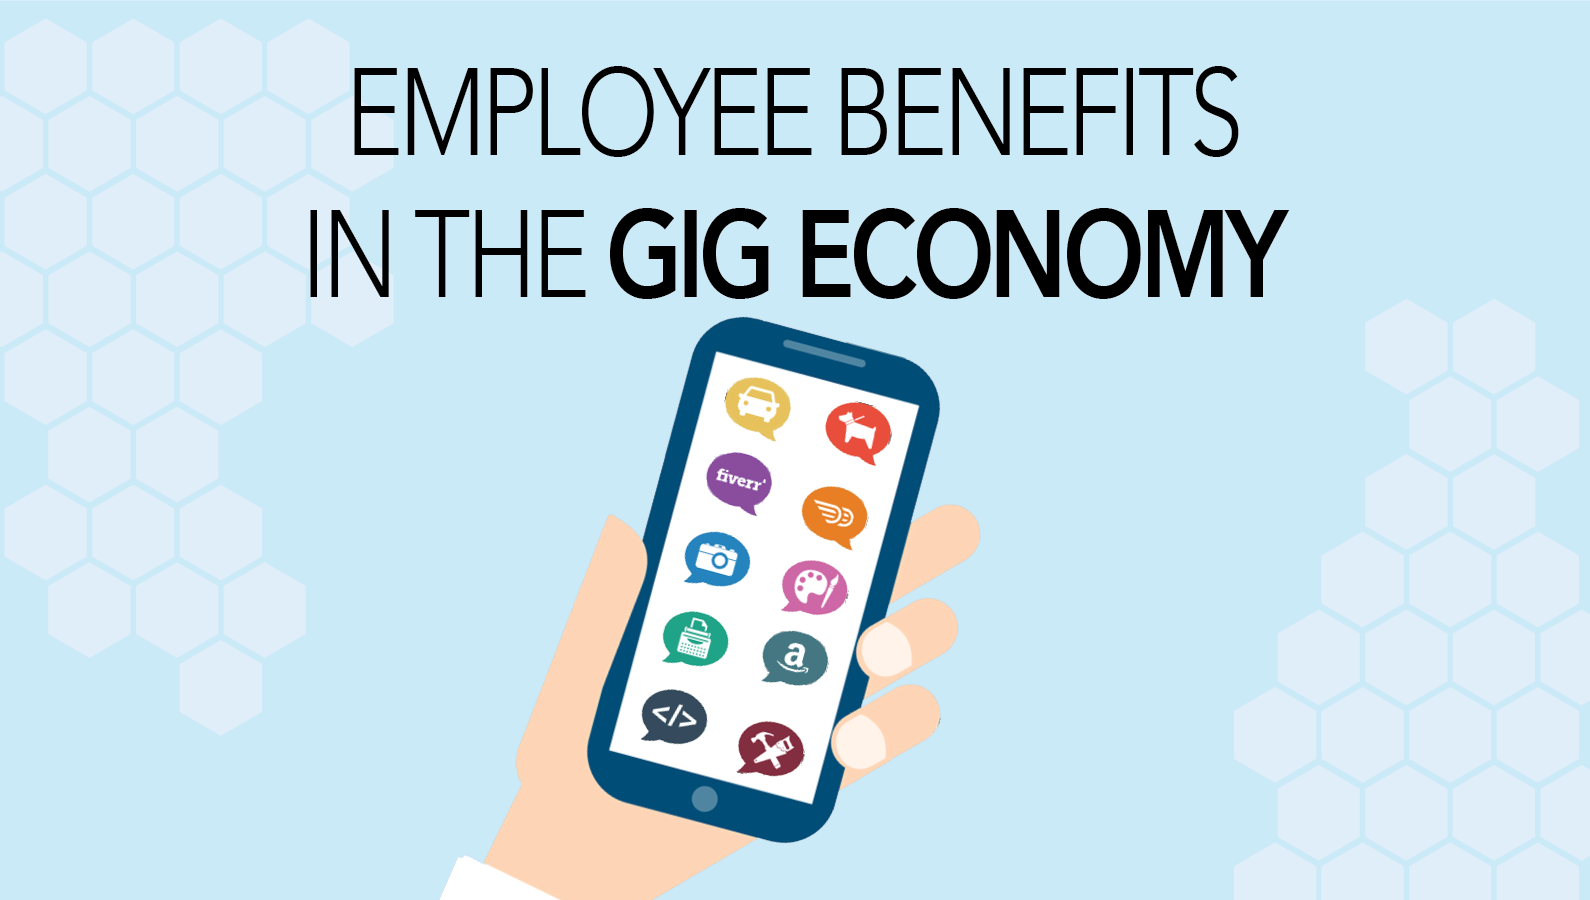 Employee Benefits in the Gig Economy - Featured Image